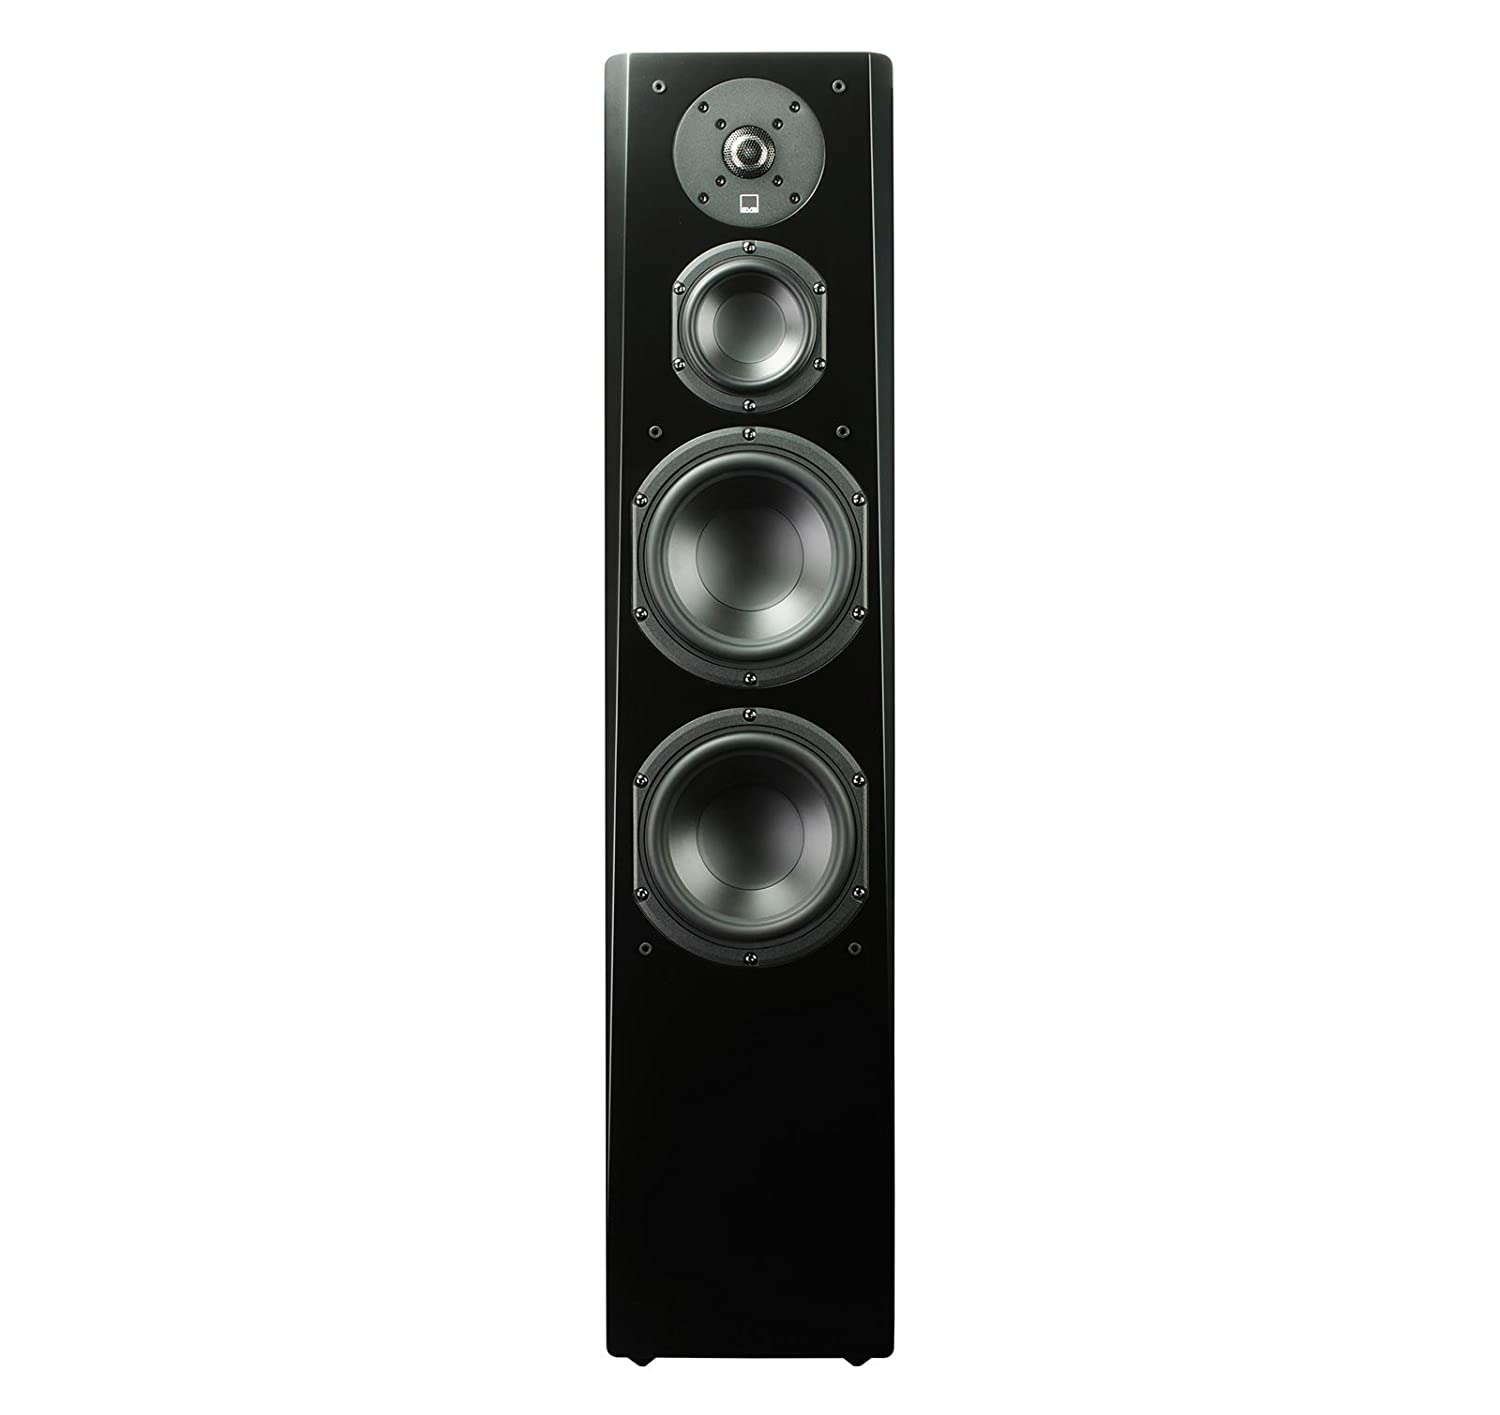 Svs Prime Tower Speaker Black Ash Pair Home Audio 2 Way Switch Box Theater